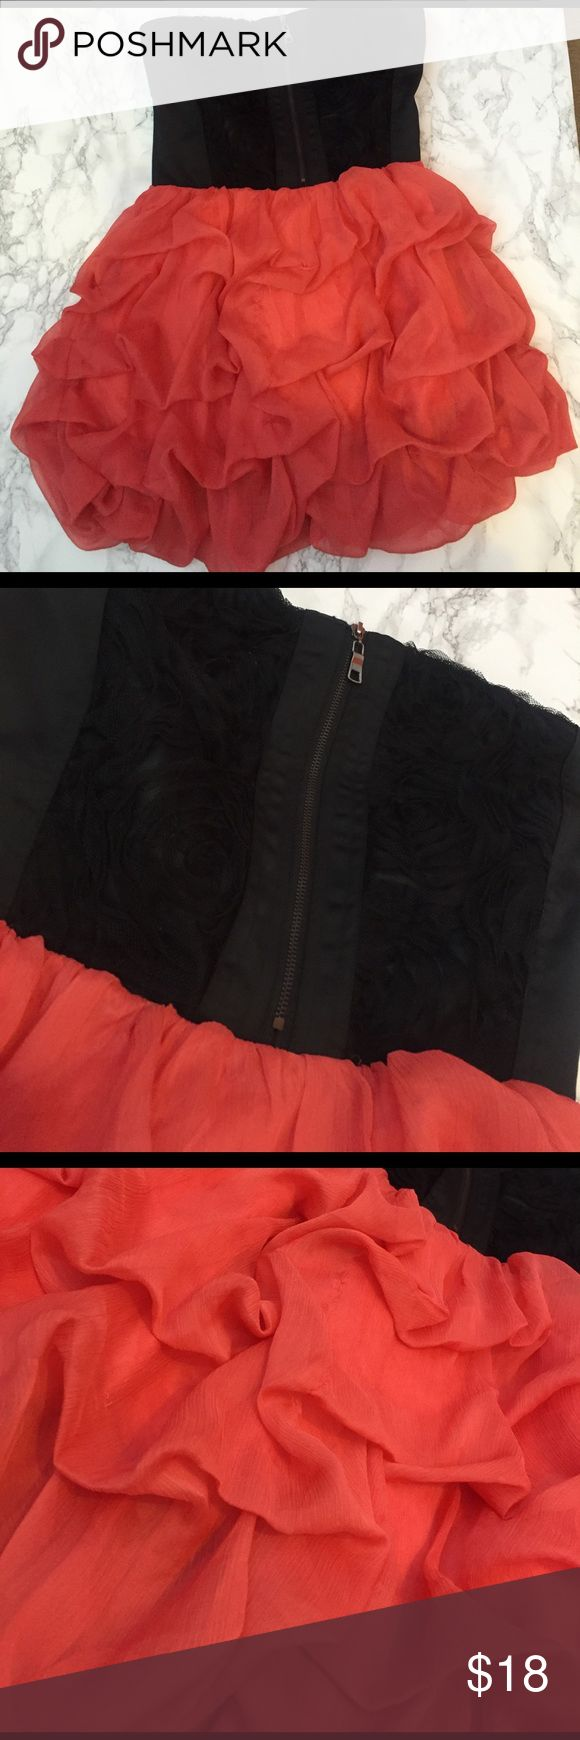 Ruffle party dress! Black & coral! Rosettes! NWOT Ruffle party dress! Black & coral! Rosettes! NWOT! Zipper too! Bought at a local boutique :) gracia fashion Dresses Mini